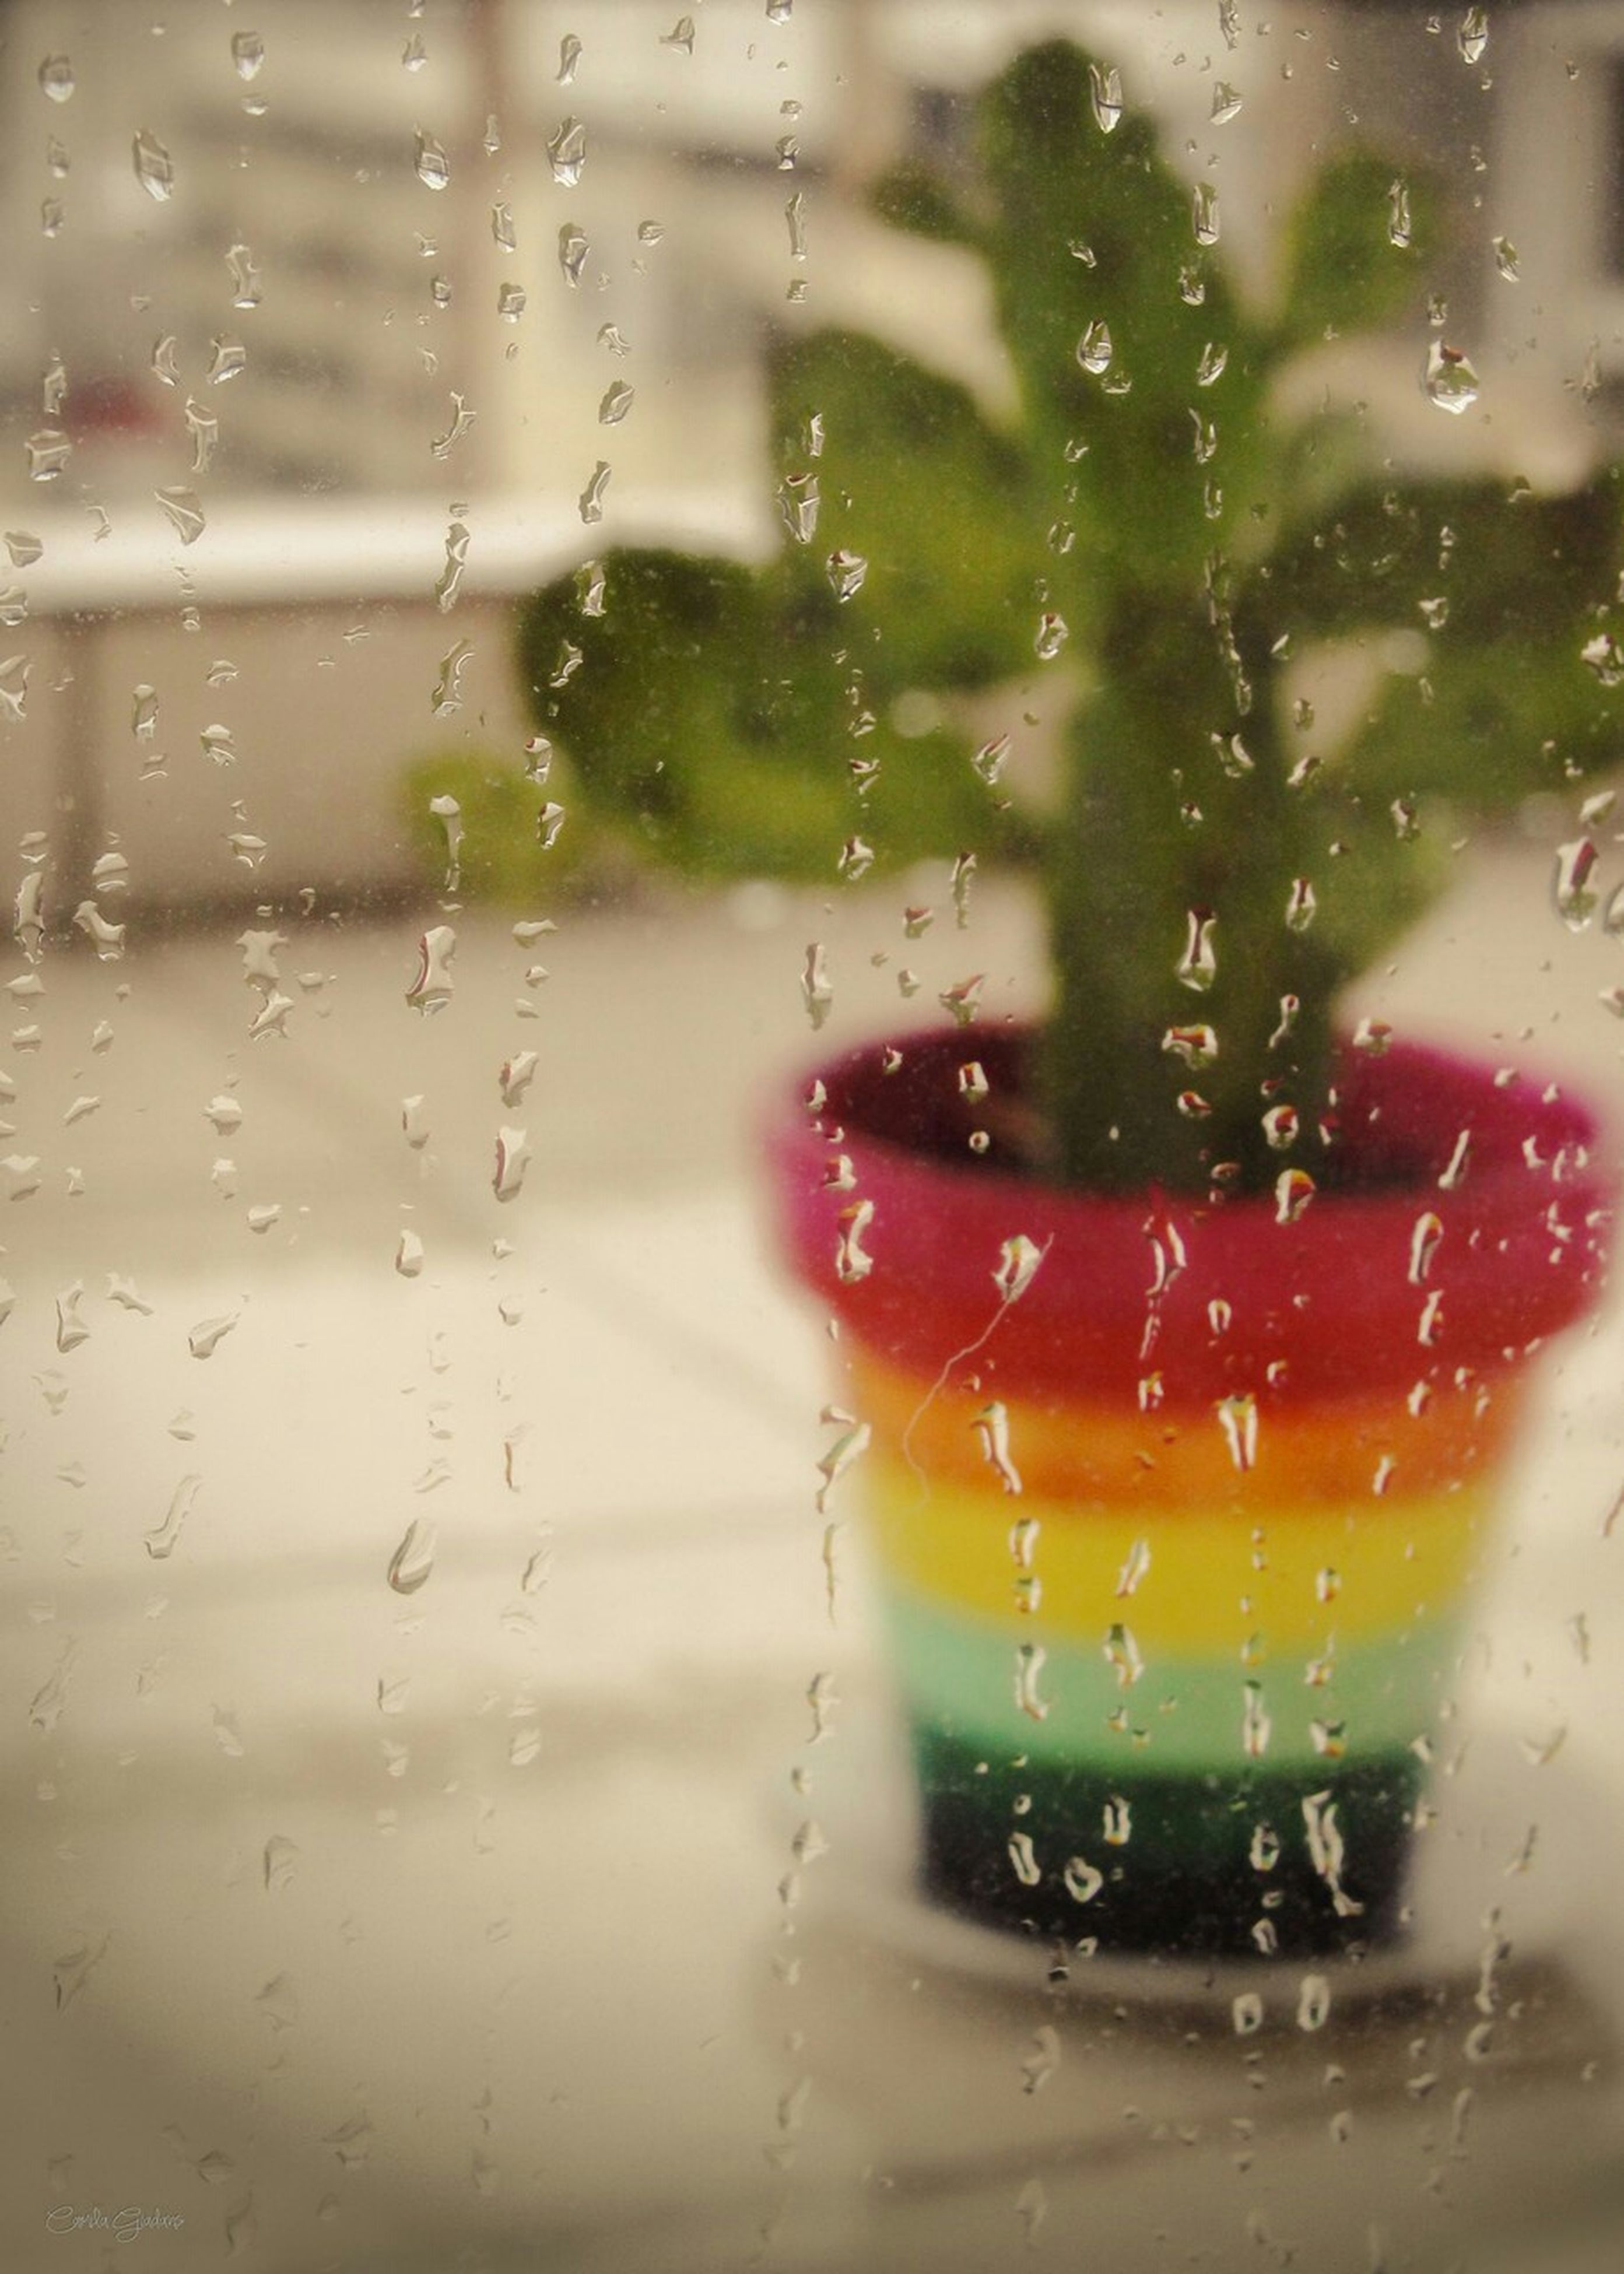 drop, wet, window, transparent, glass - material, indoors, rain, focus on foreground, water, close-up, car, transportation, raindrop, land vehicle, glass, weather, mode of transport, vehicle interior, red, season